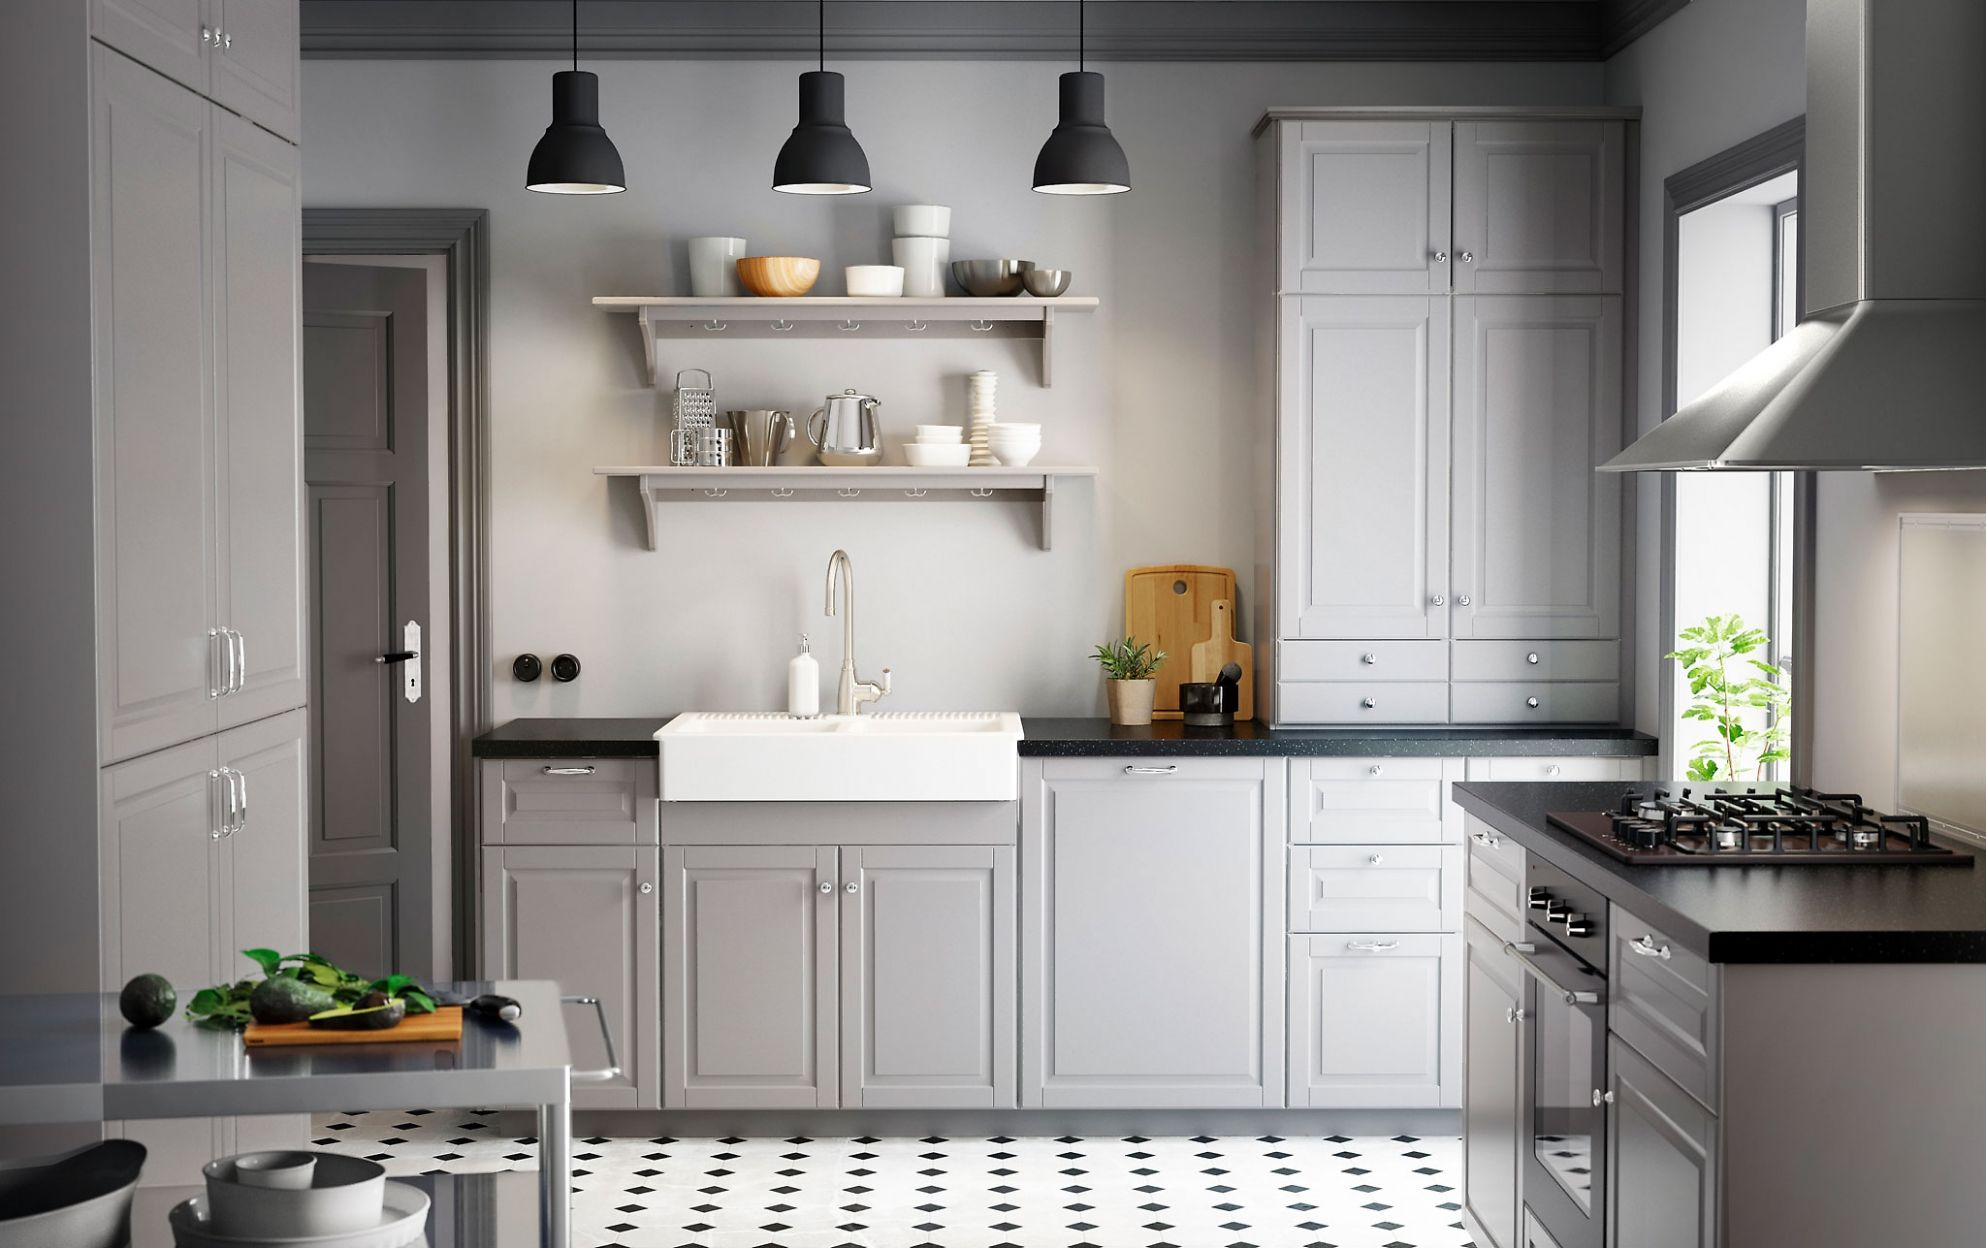 uk-ikea-kitchen-gallery-styling-up-your-kitchens-ideas-inspiration ...